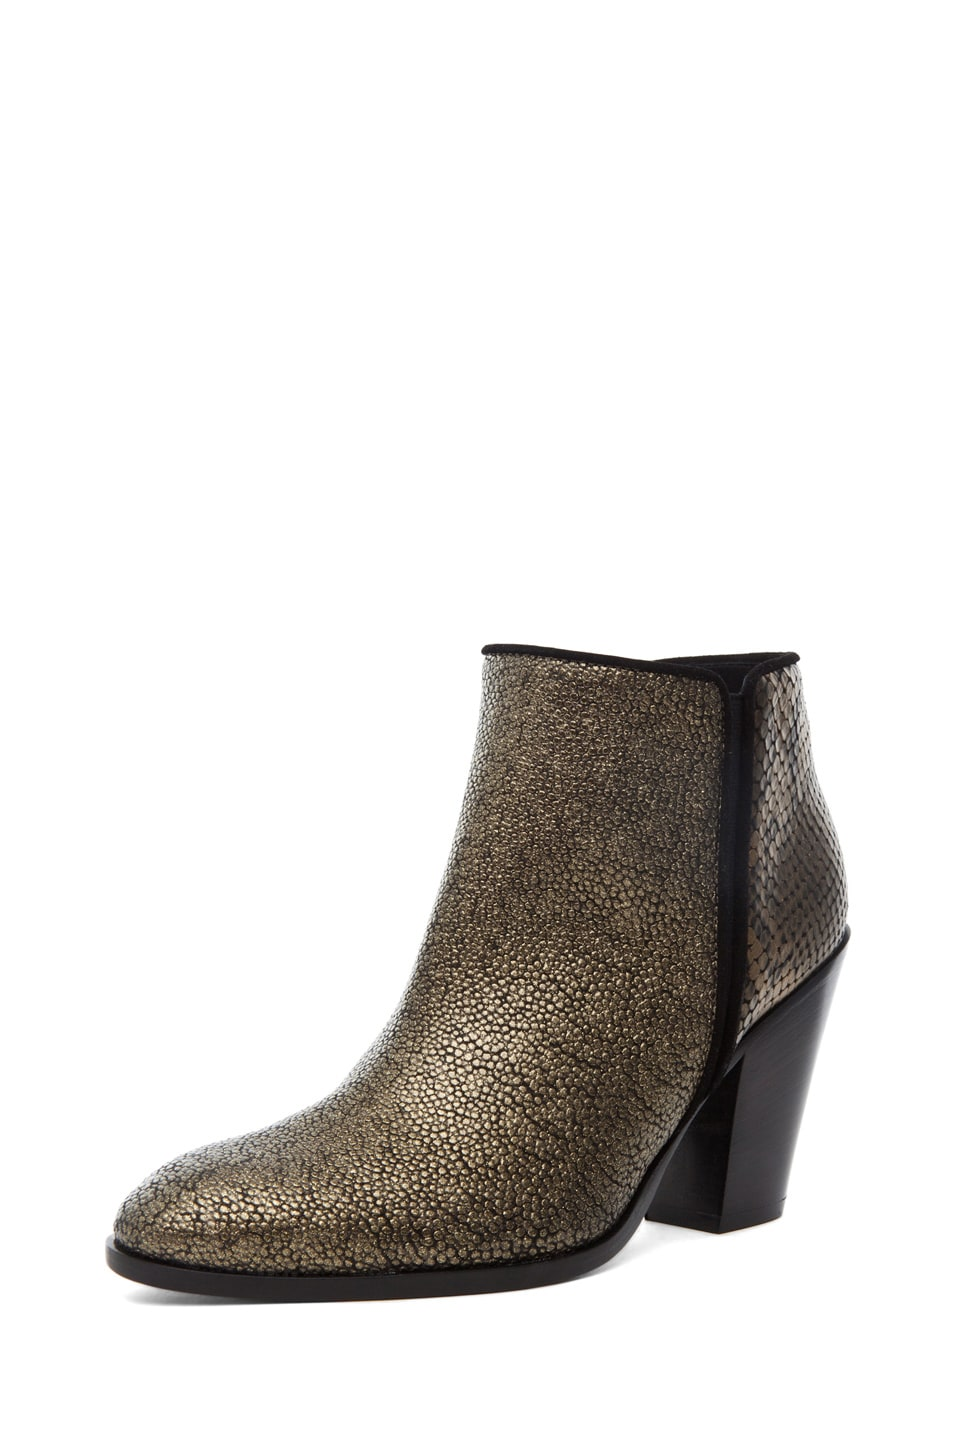 Image 2 of Giuseppe Zanotti Mixed Print Bootie in Bronze